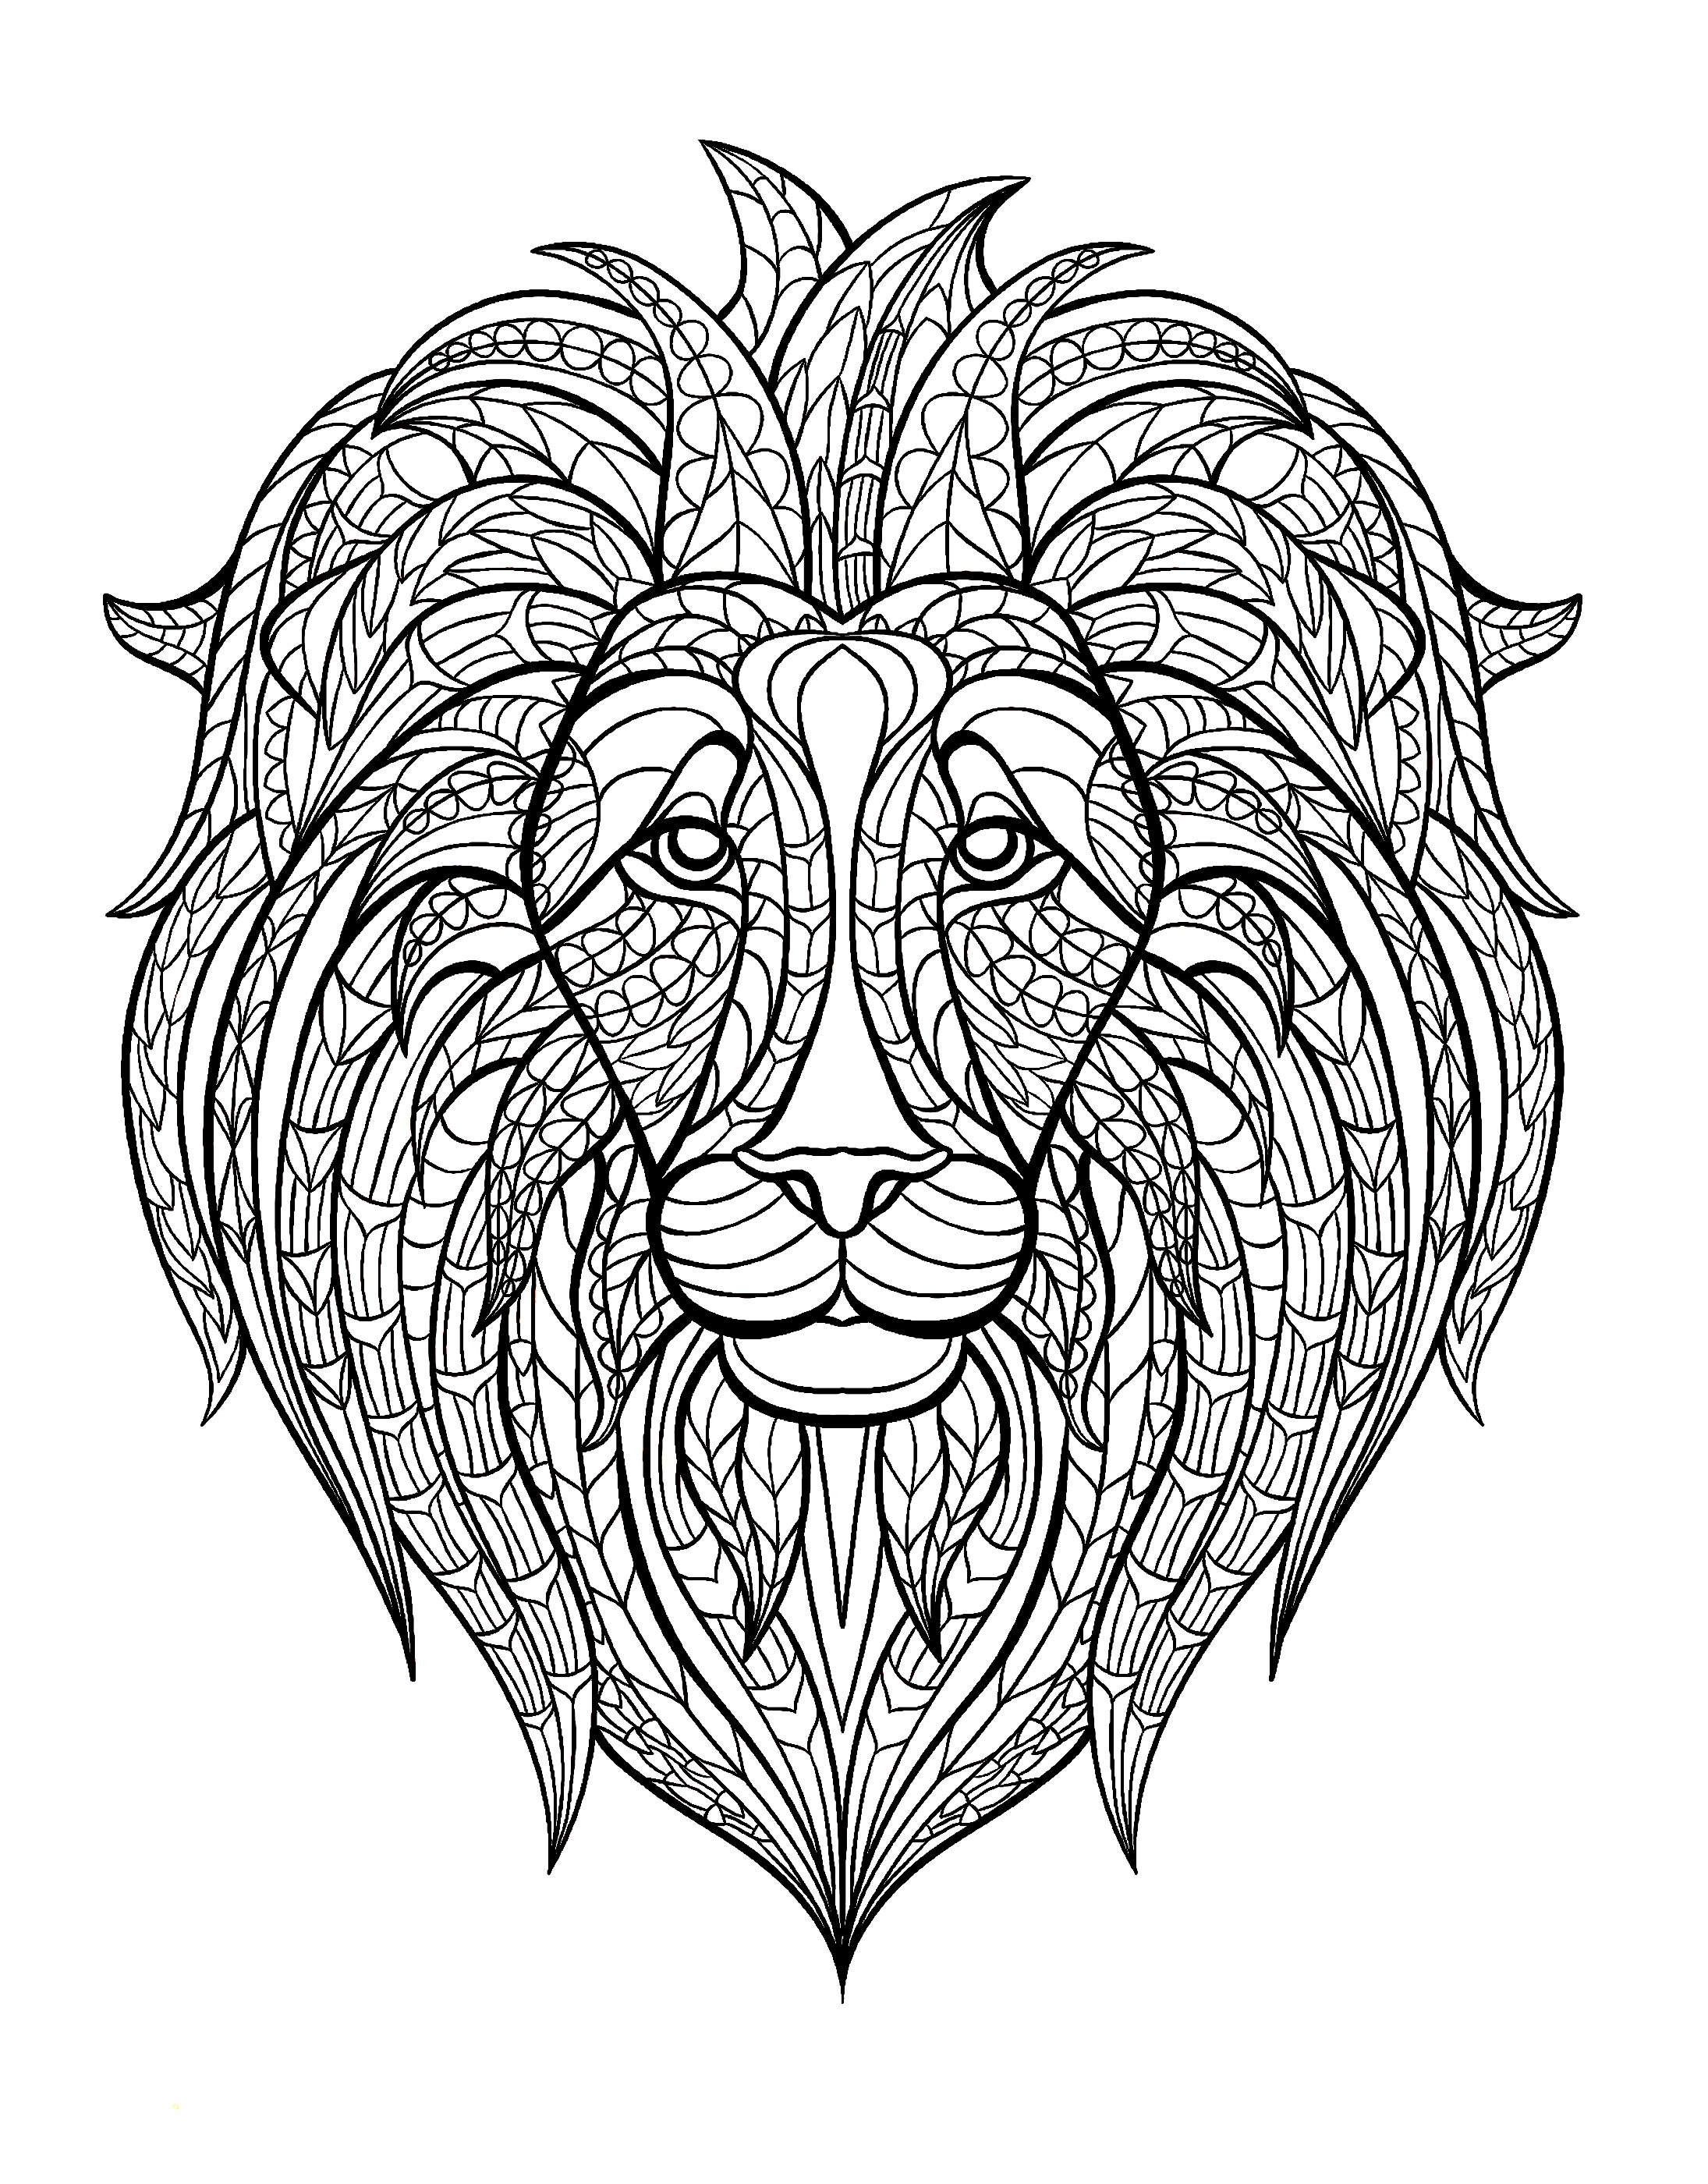 africa lion head countries archives coloring pages for adults